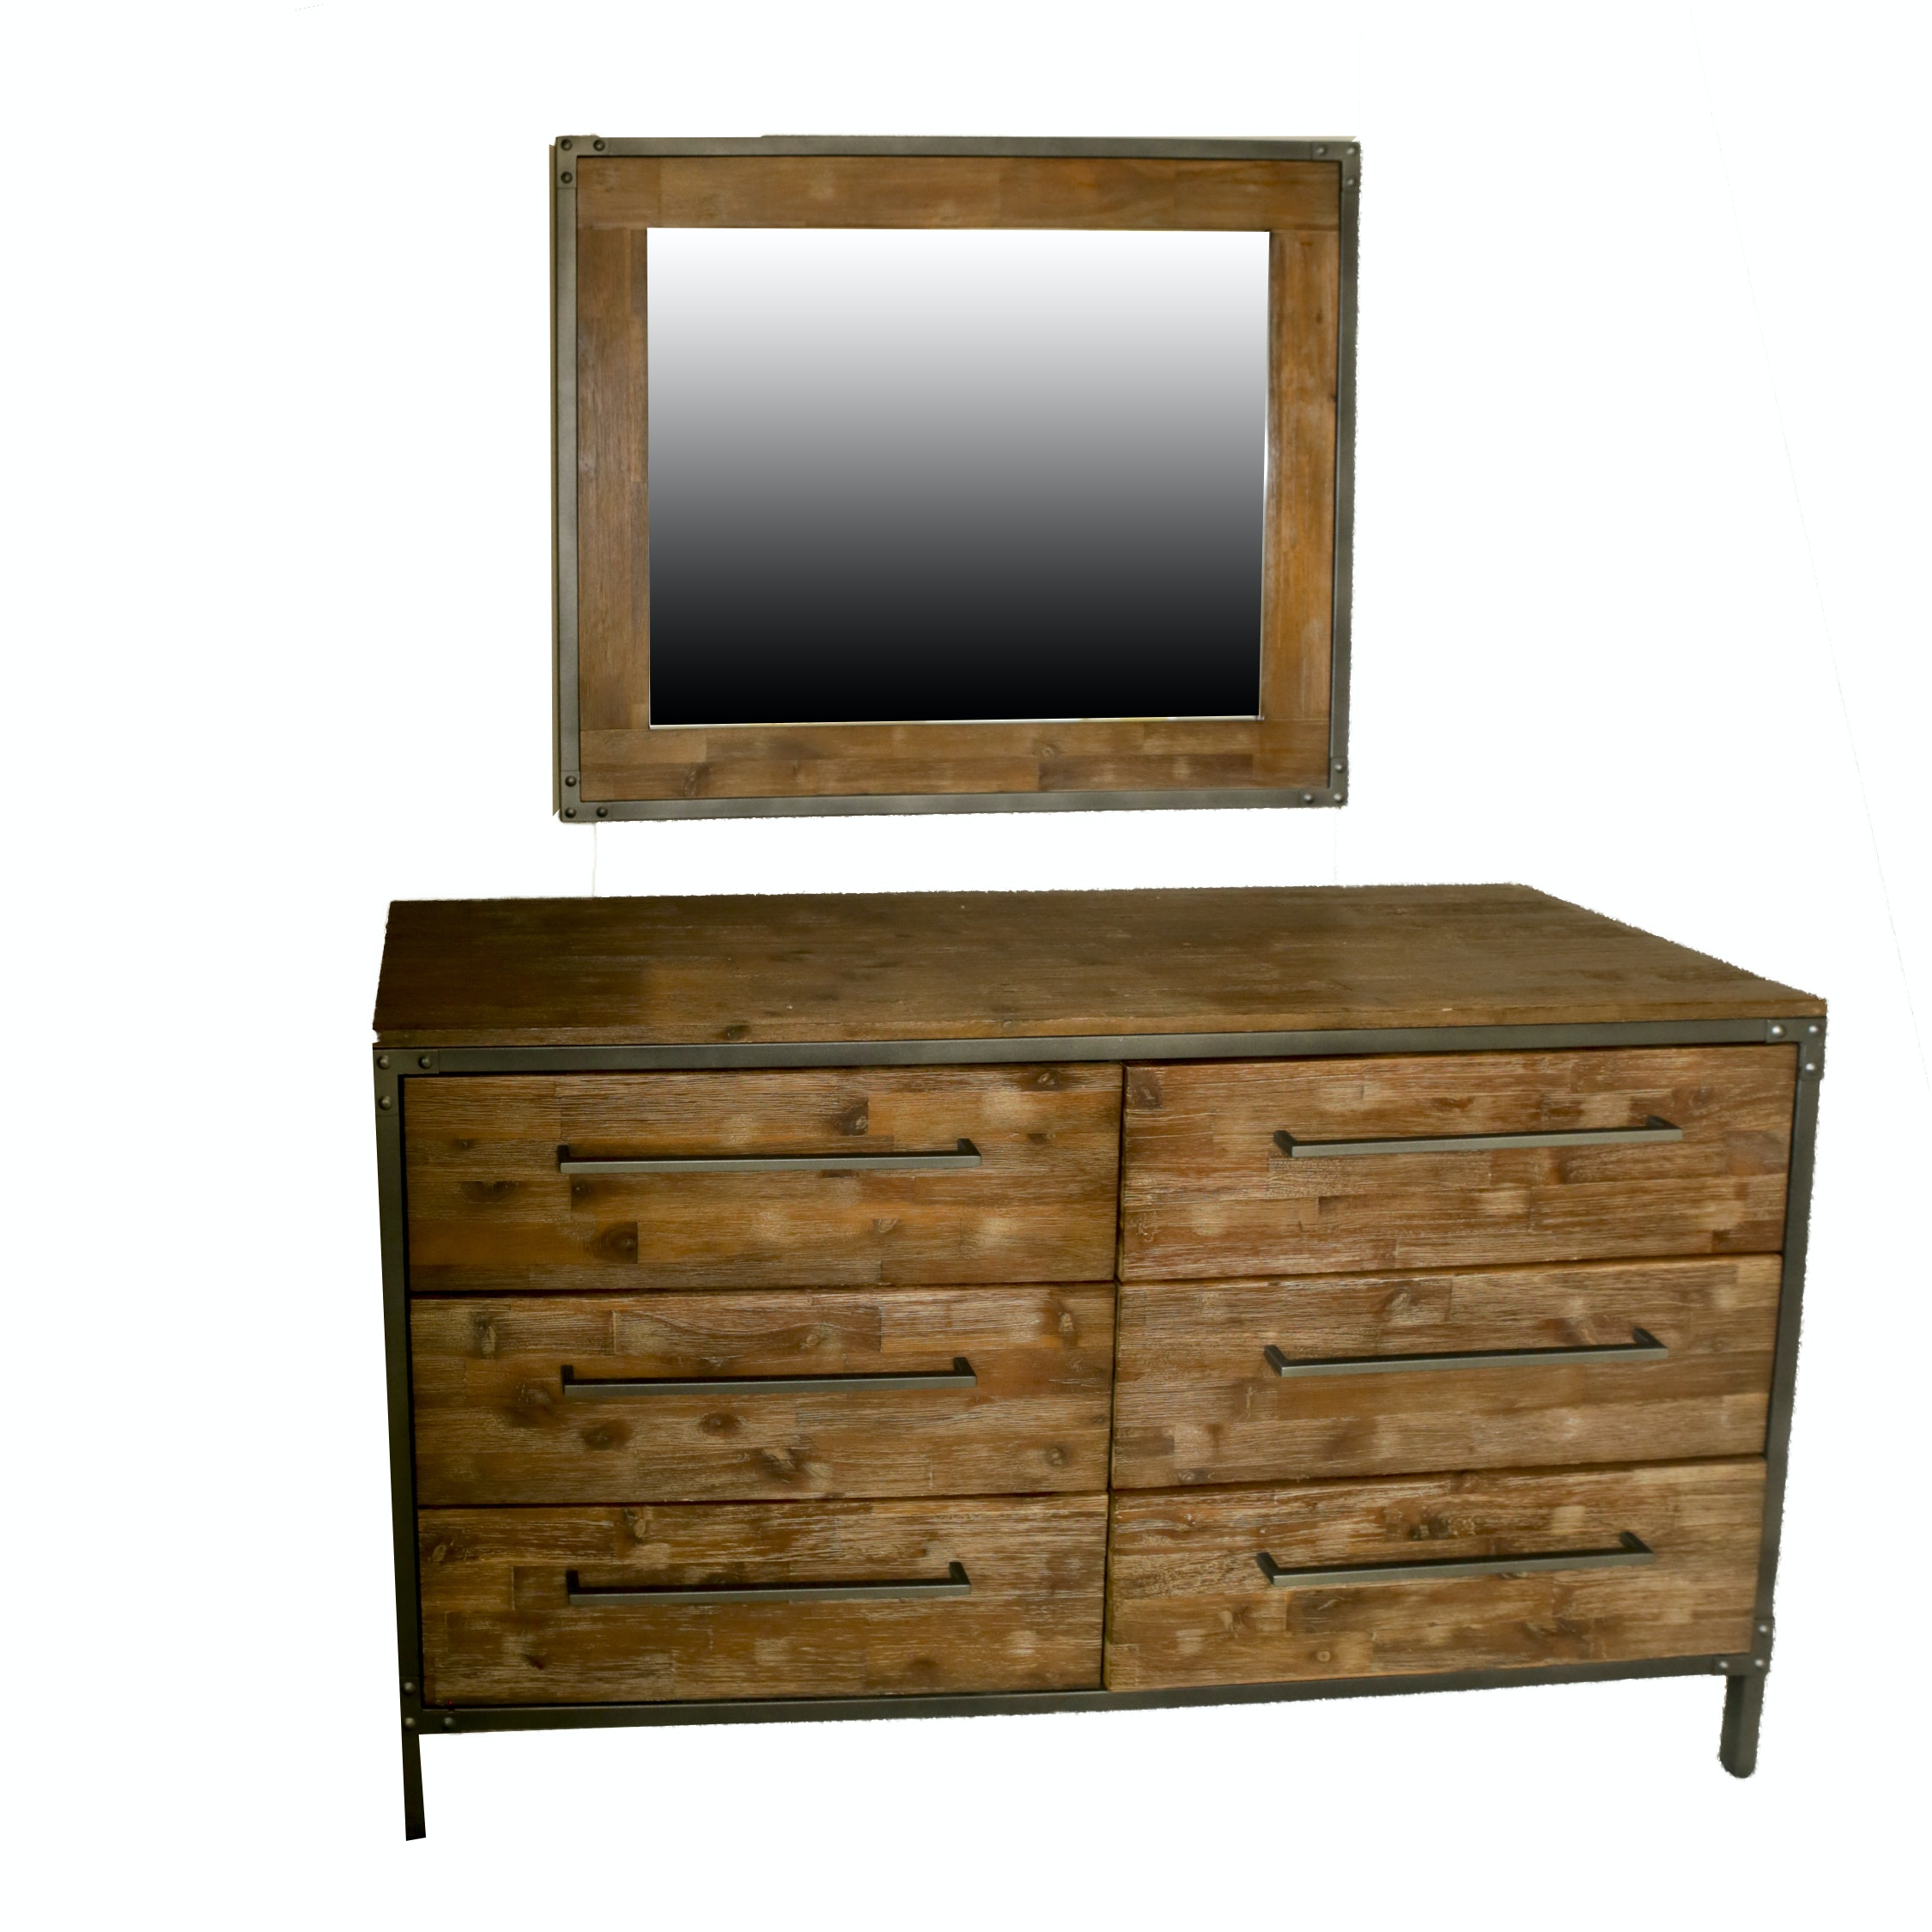 Contemporary Rustic Style Chest of Drawers with Wall Mount Mirror